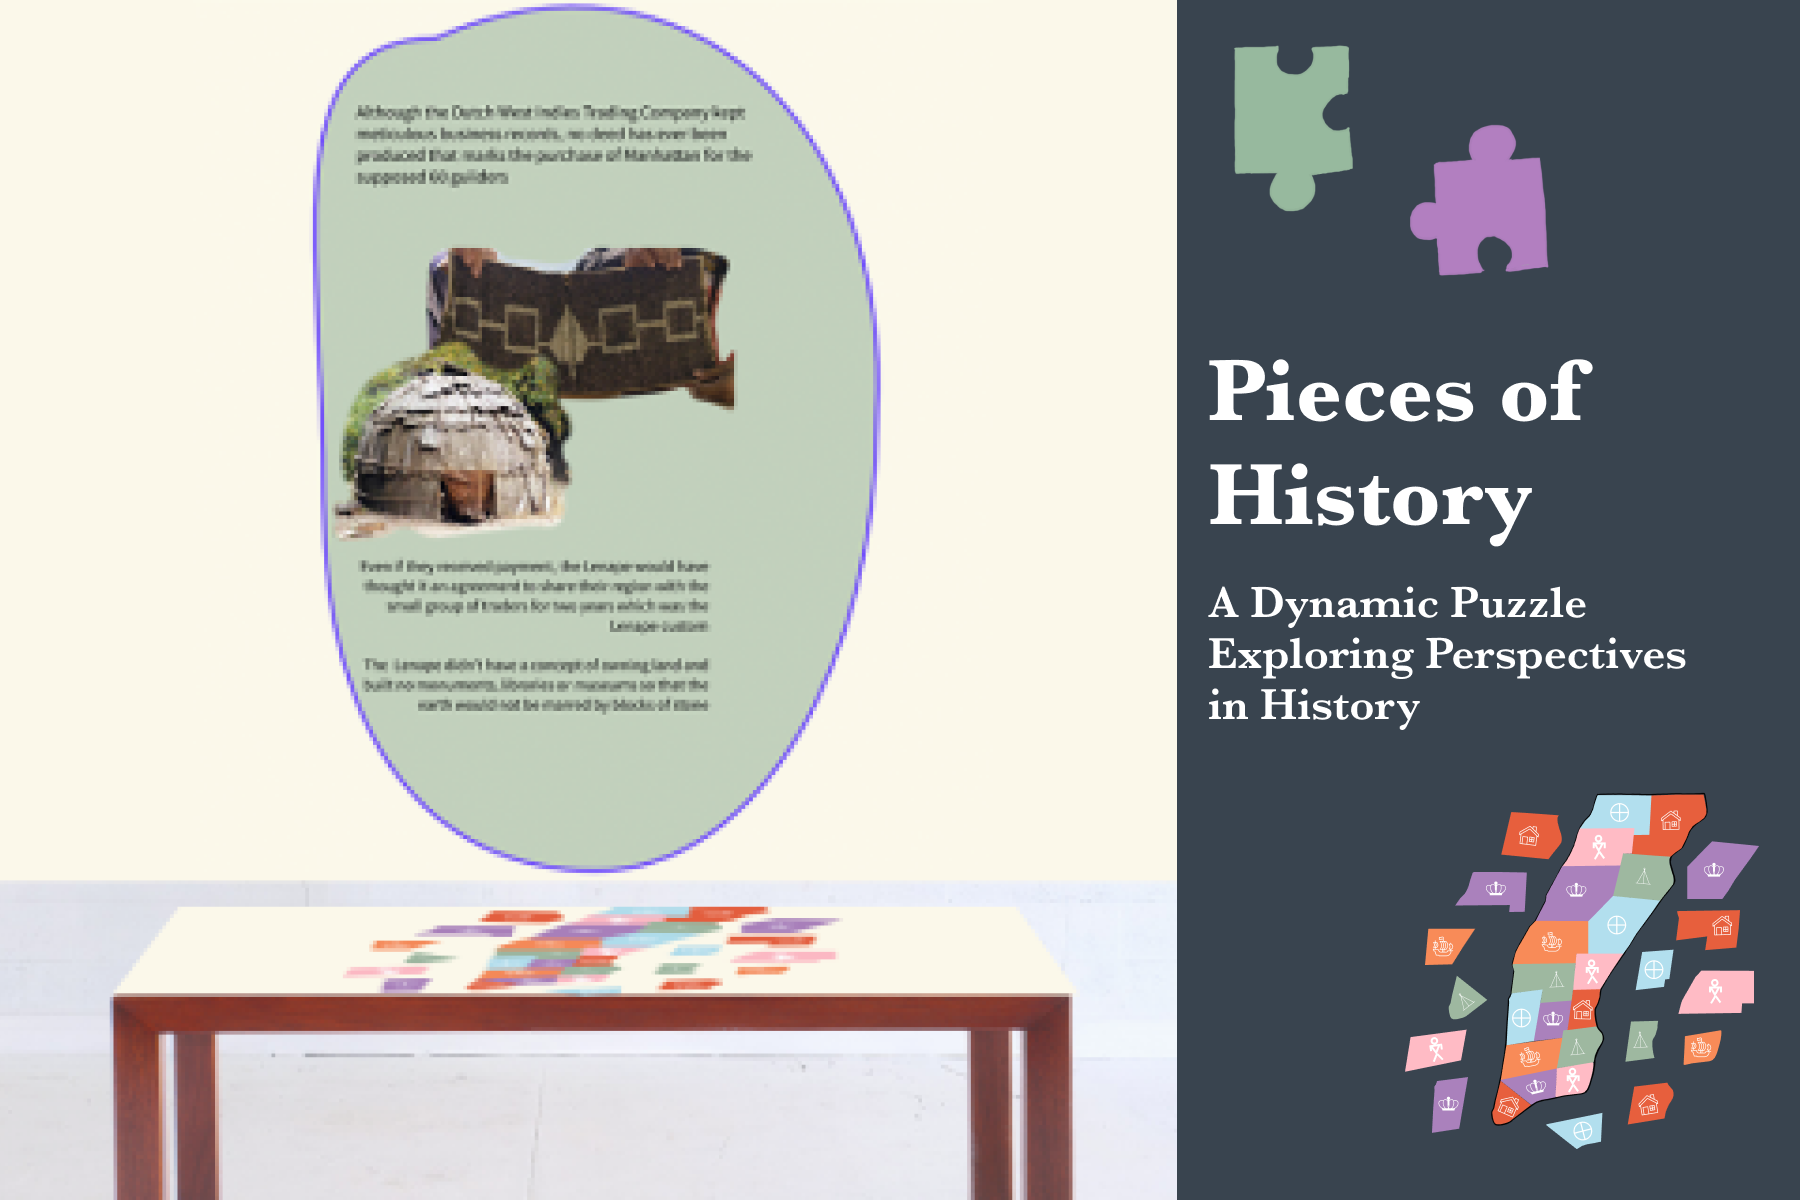 Pieces of History A dynamic puzzle exploring perspectives in history.